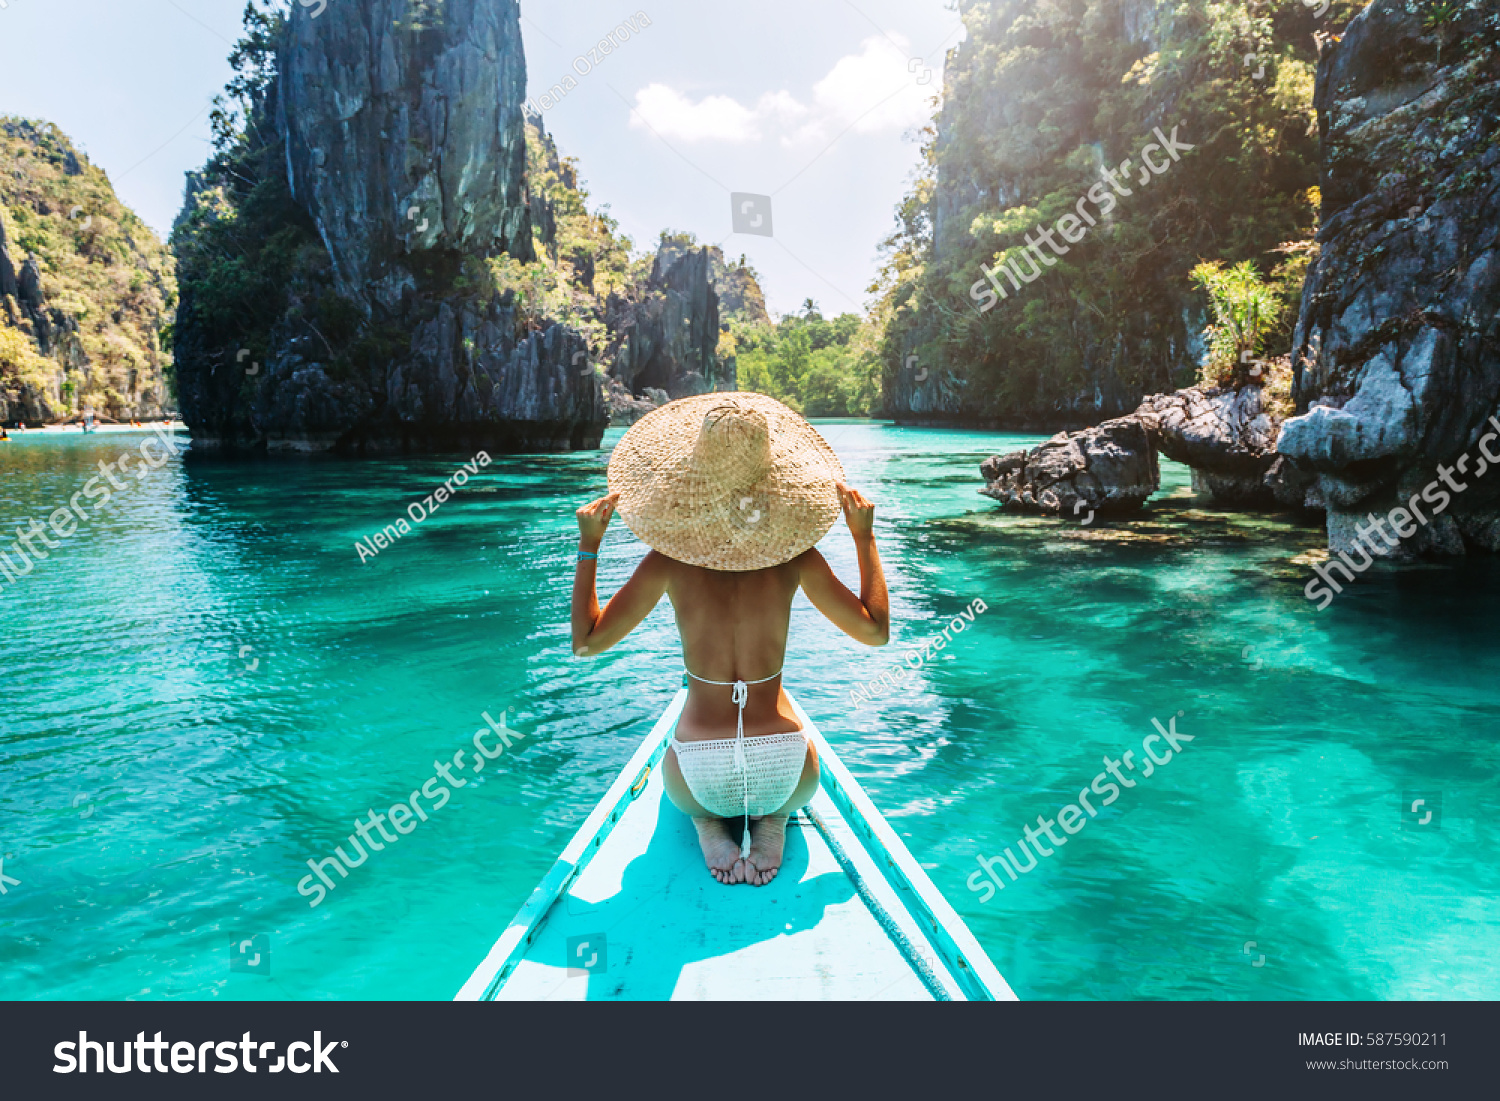 Back view of the young woman in straw hat relaxing on the boat and looking forward into lagoon. Travelling tour in Asia: El Nido, Palawan, Philippines. #587590211 - 123PhotoFree.com